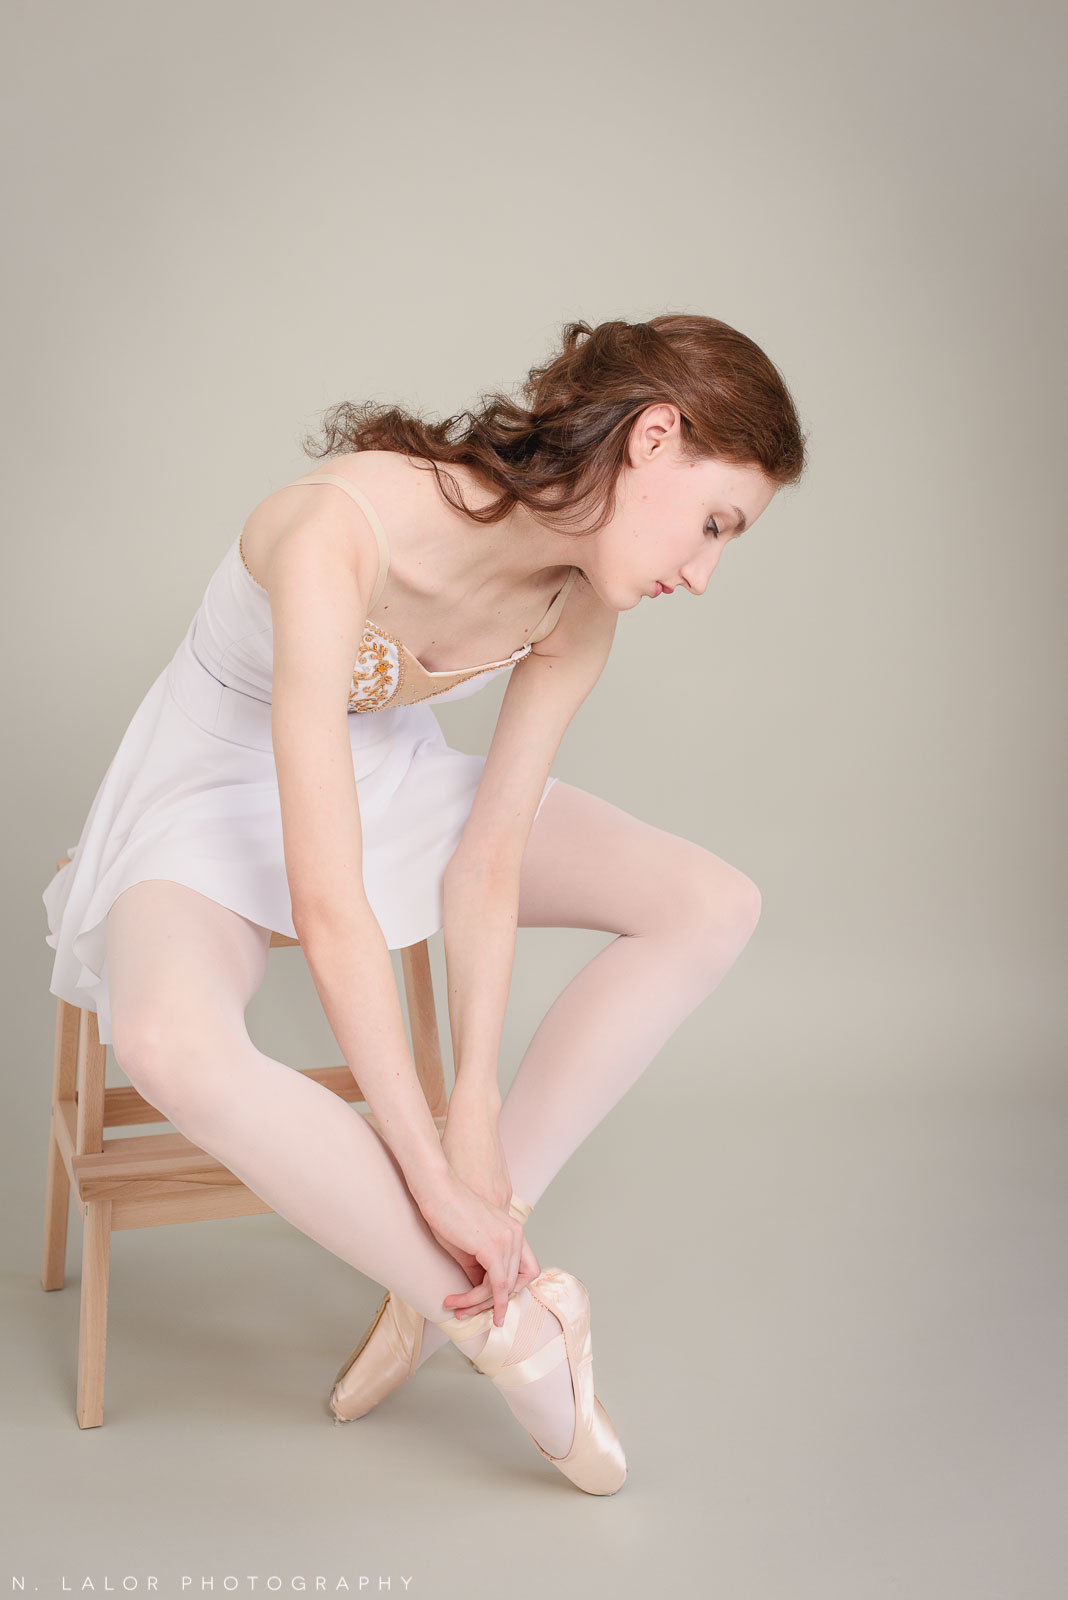 Ballet dancer portraits by N. Lalor Photography in Greenwich, Connecticut.